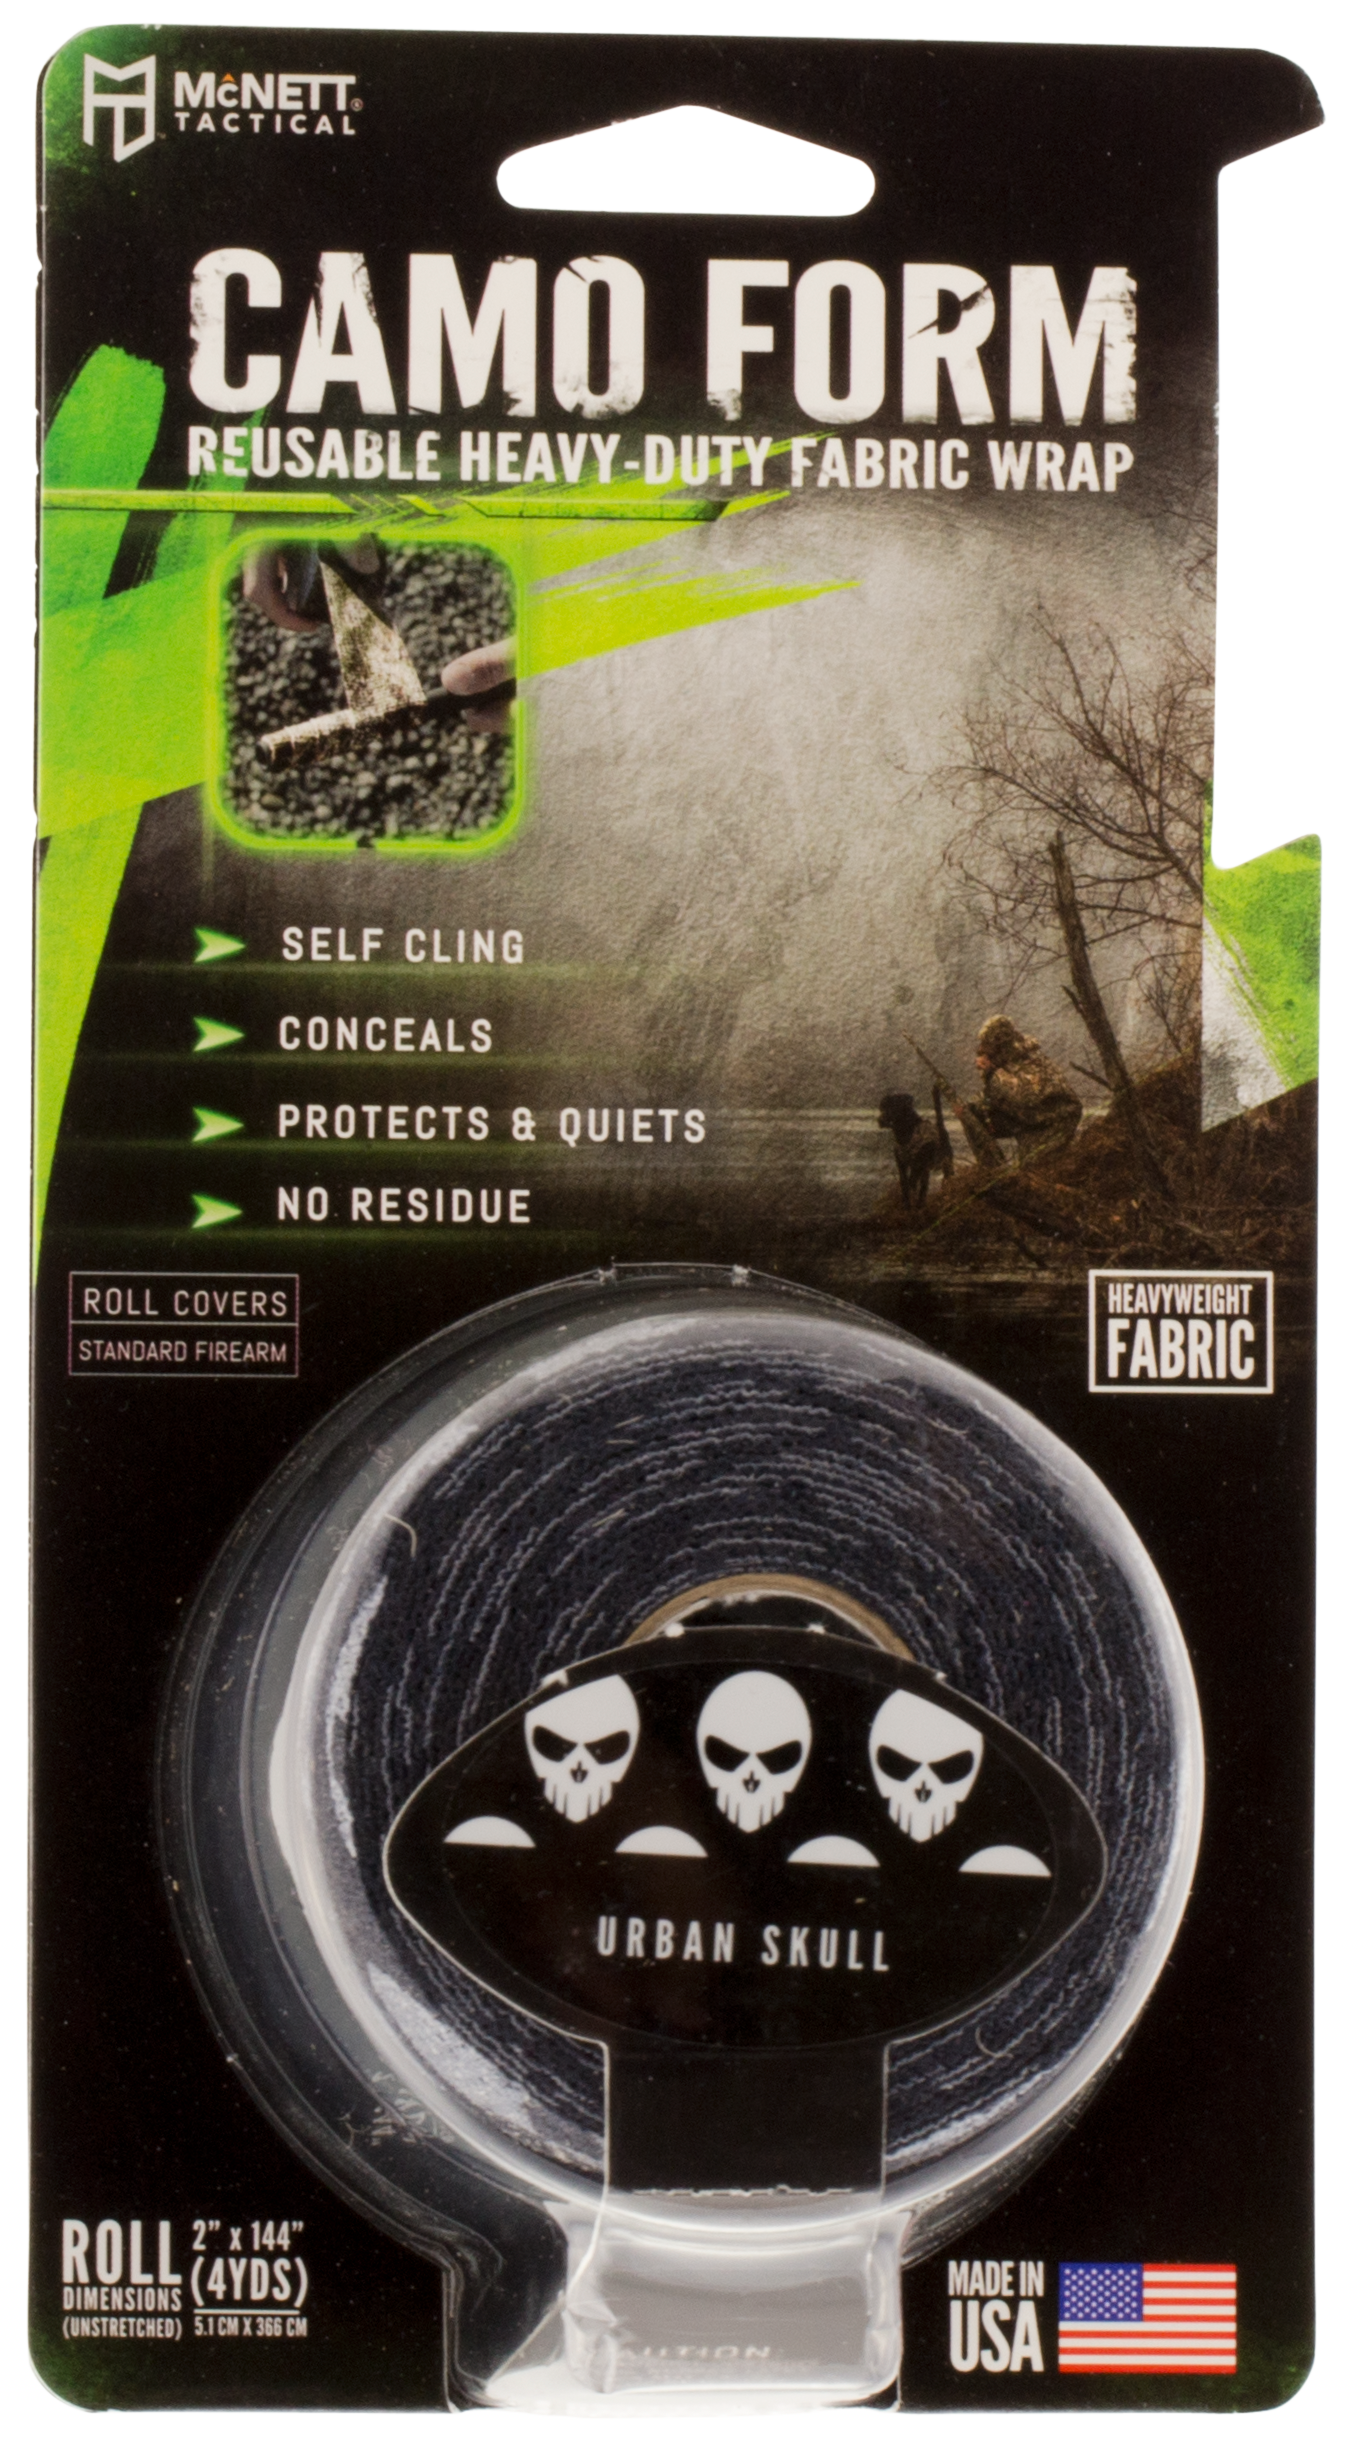 McNett Tactical 19910 Camo Form Protective Wrap Tape Black w/Gray Skulls